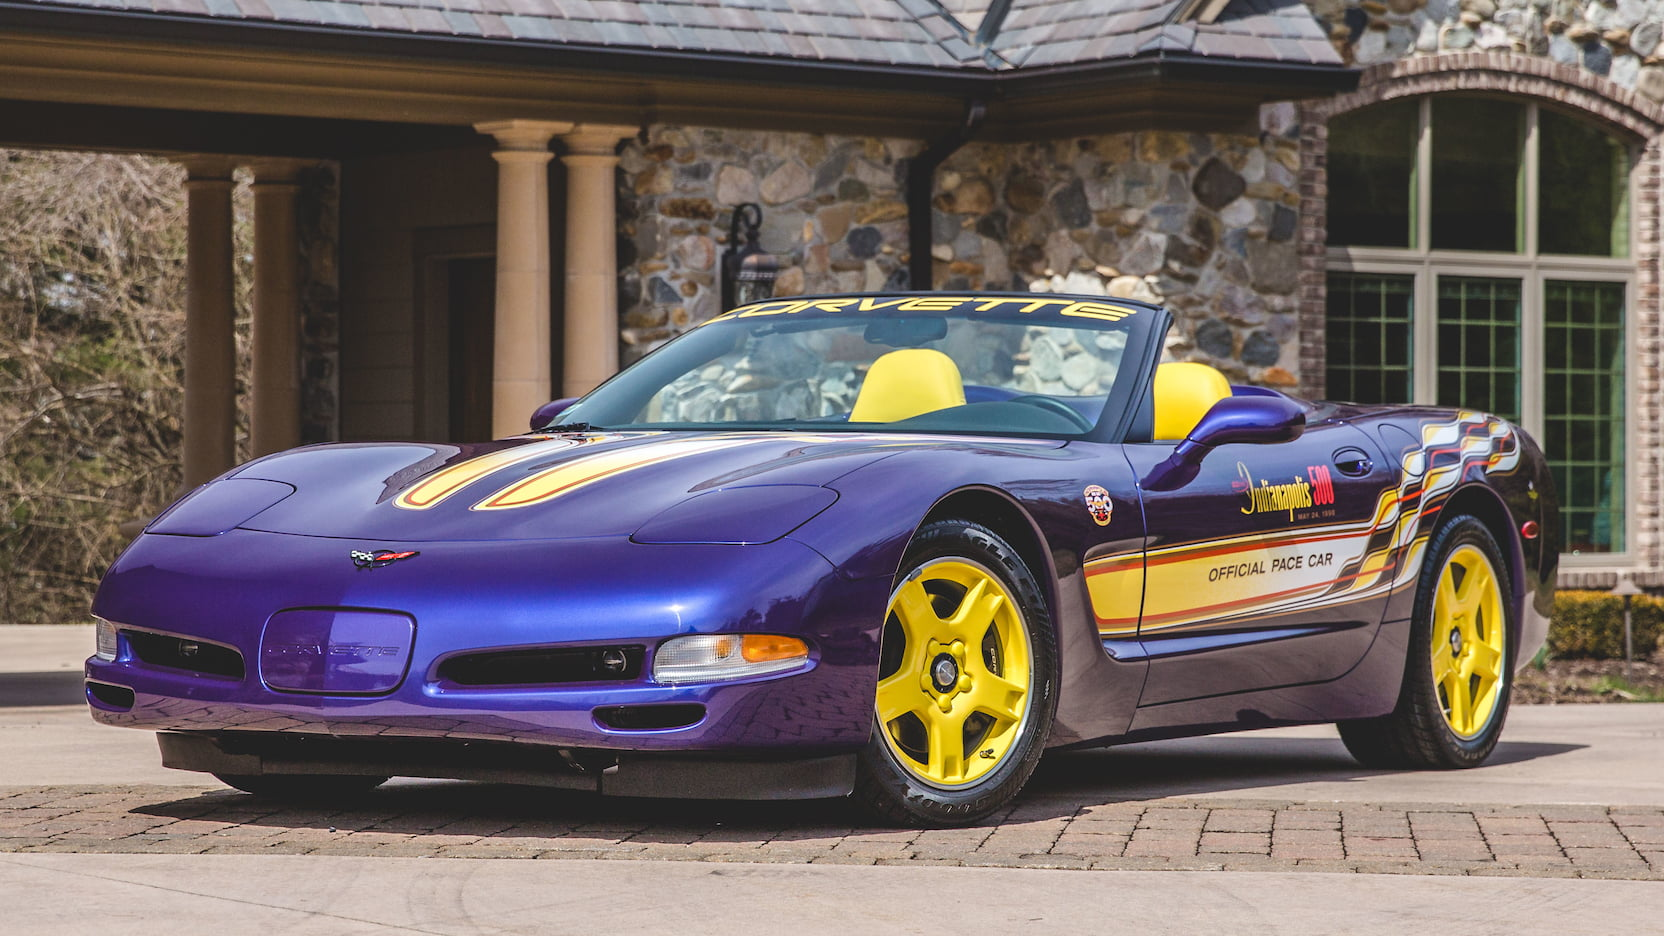 1998 Chevrolet Corvette Pace Car Edition Front 3/4